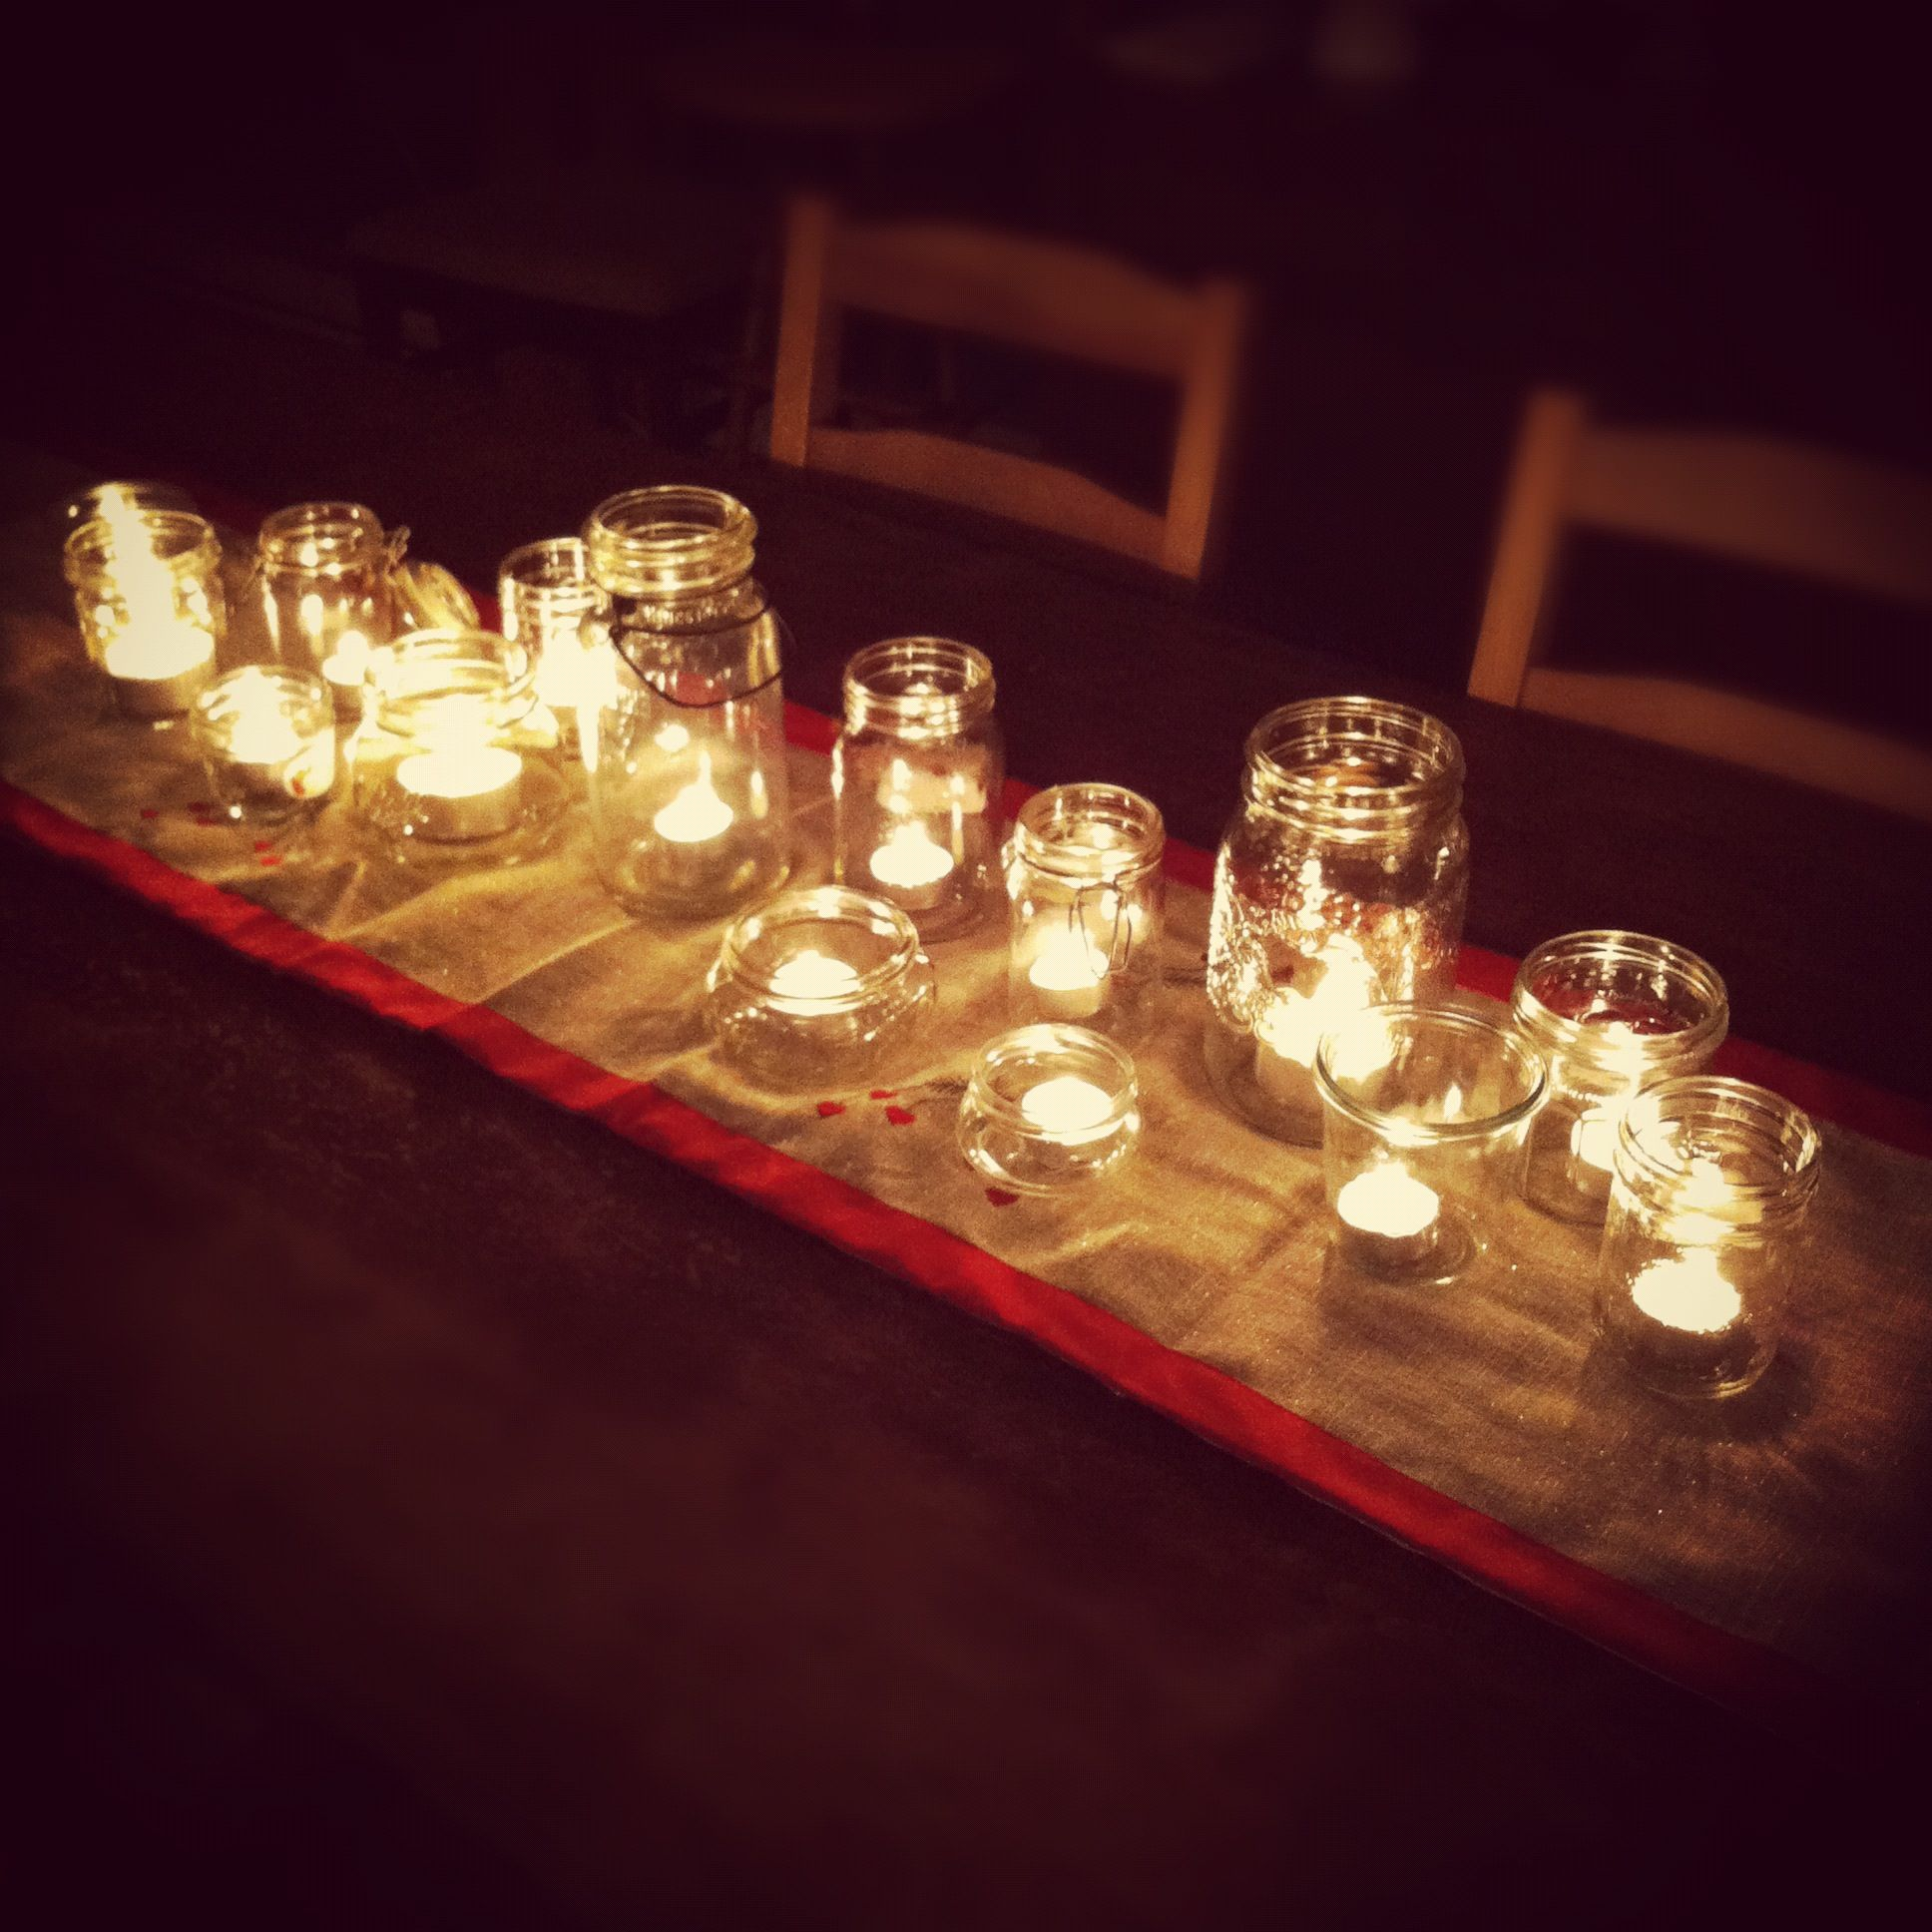 Lovely From The Kitchen: A Simple Centerpiece Of Tea Lights In Jam Jars